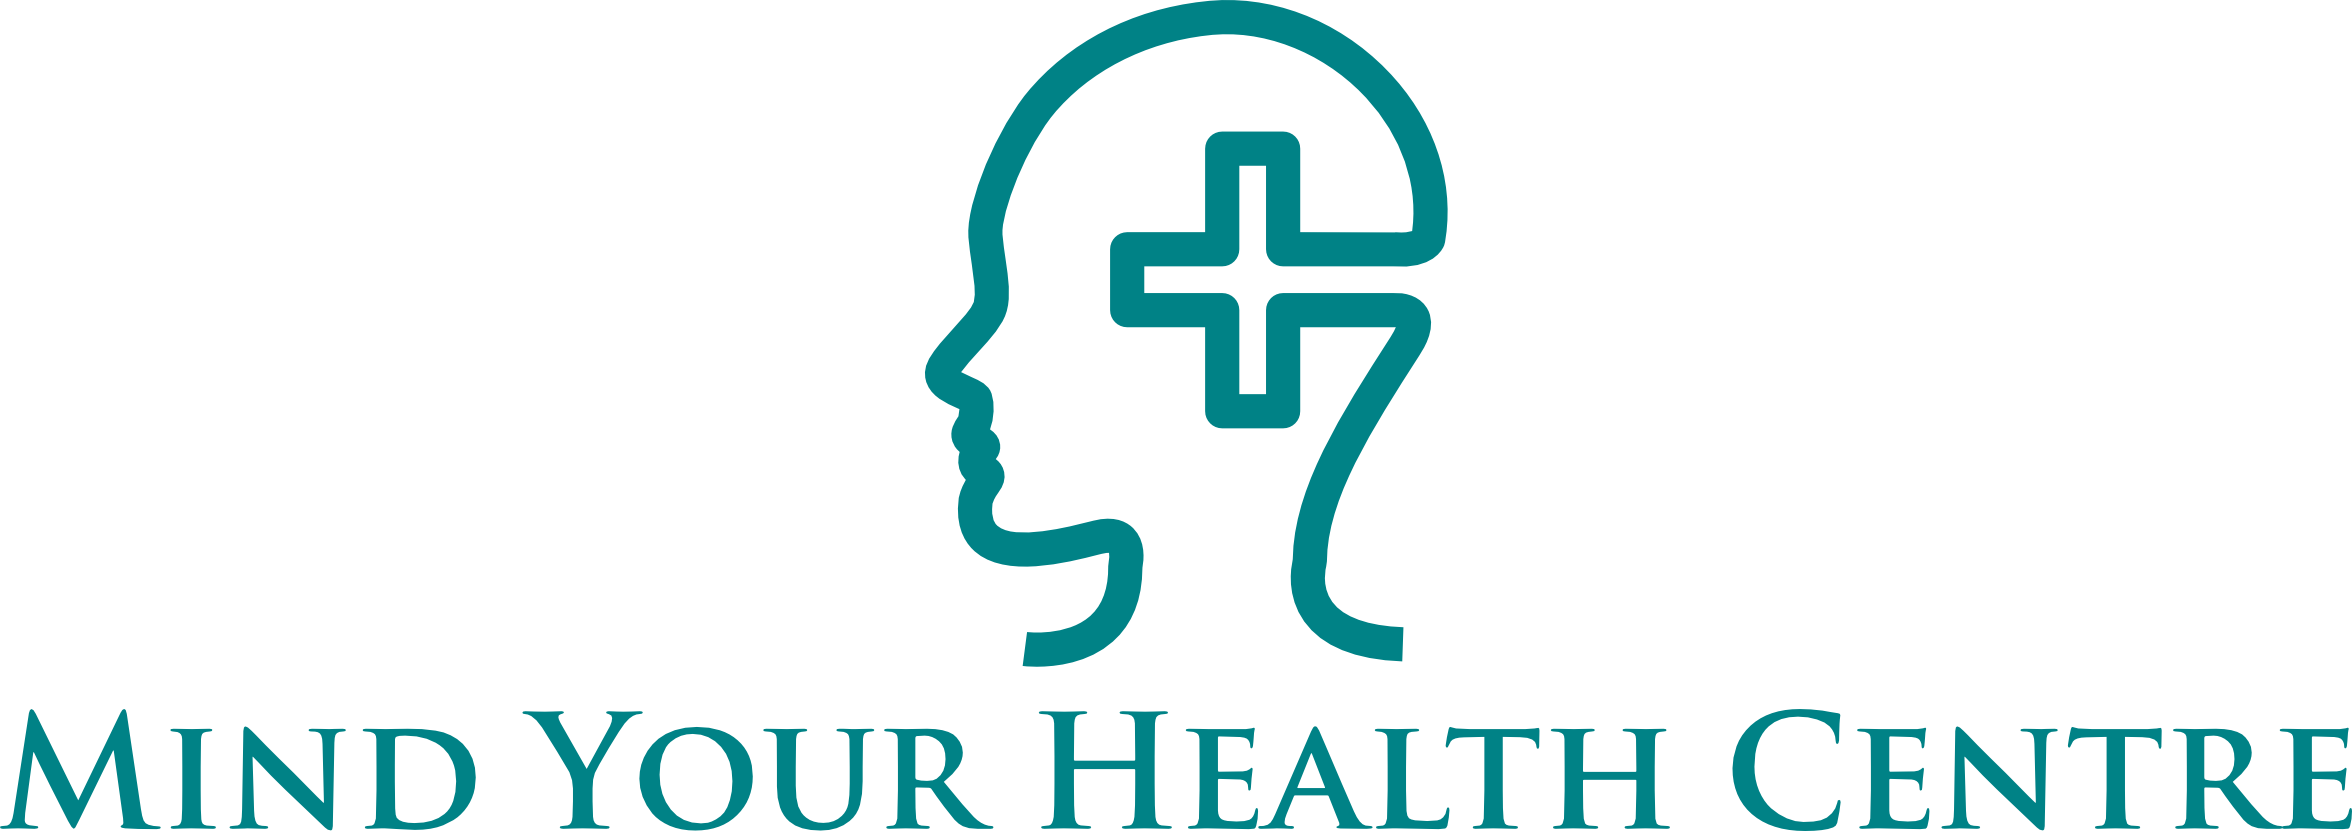 Mind Your Health Centre - The Specialists In Psychology, Health and Wellness Consulting in North Eastern Melbourne.